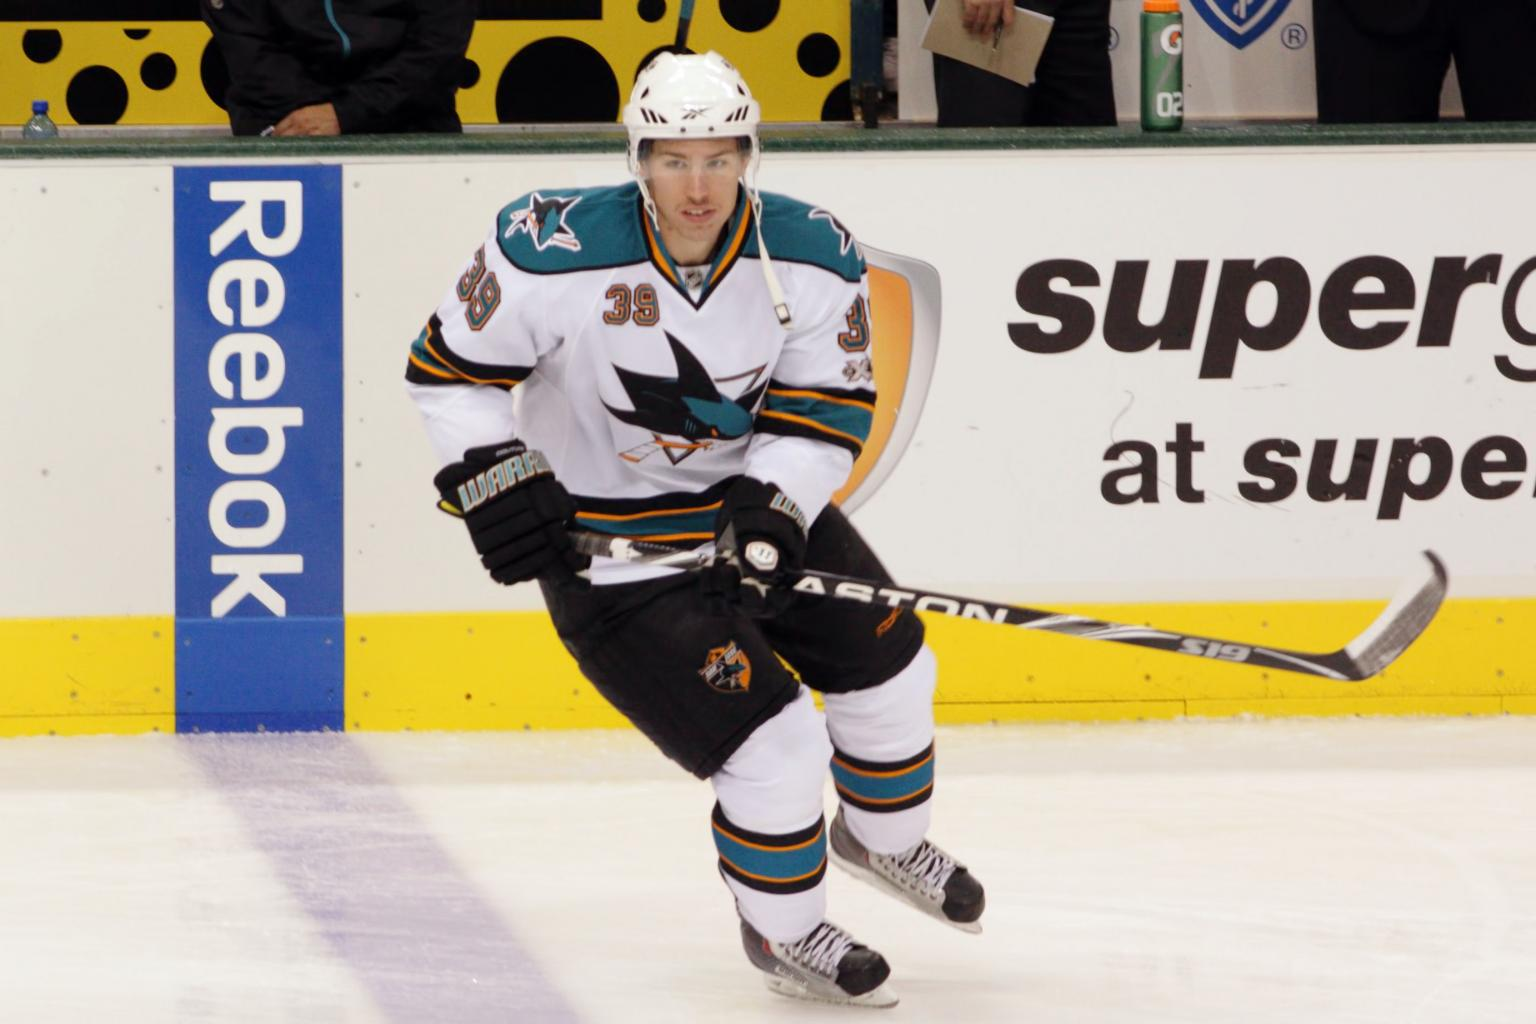 Logan Couture Out Through Christmas